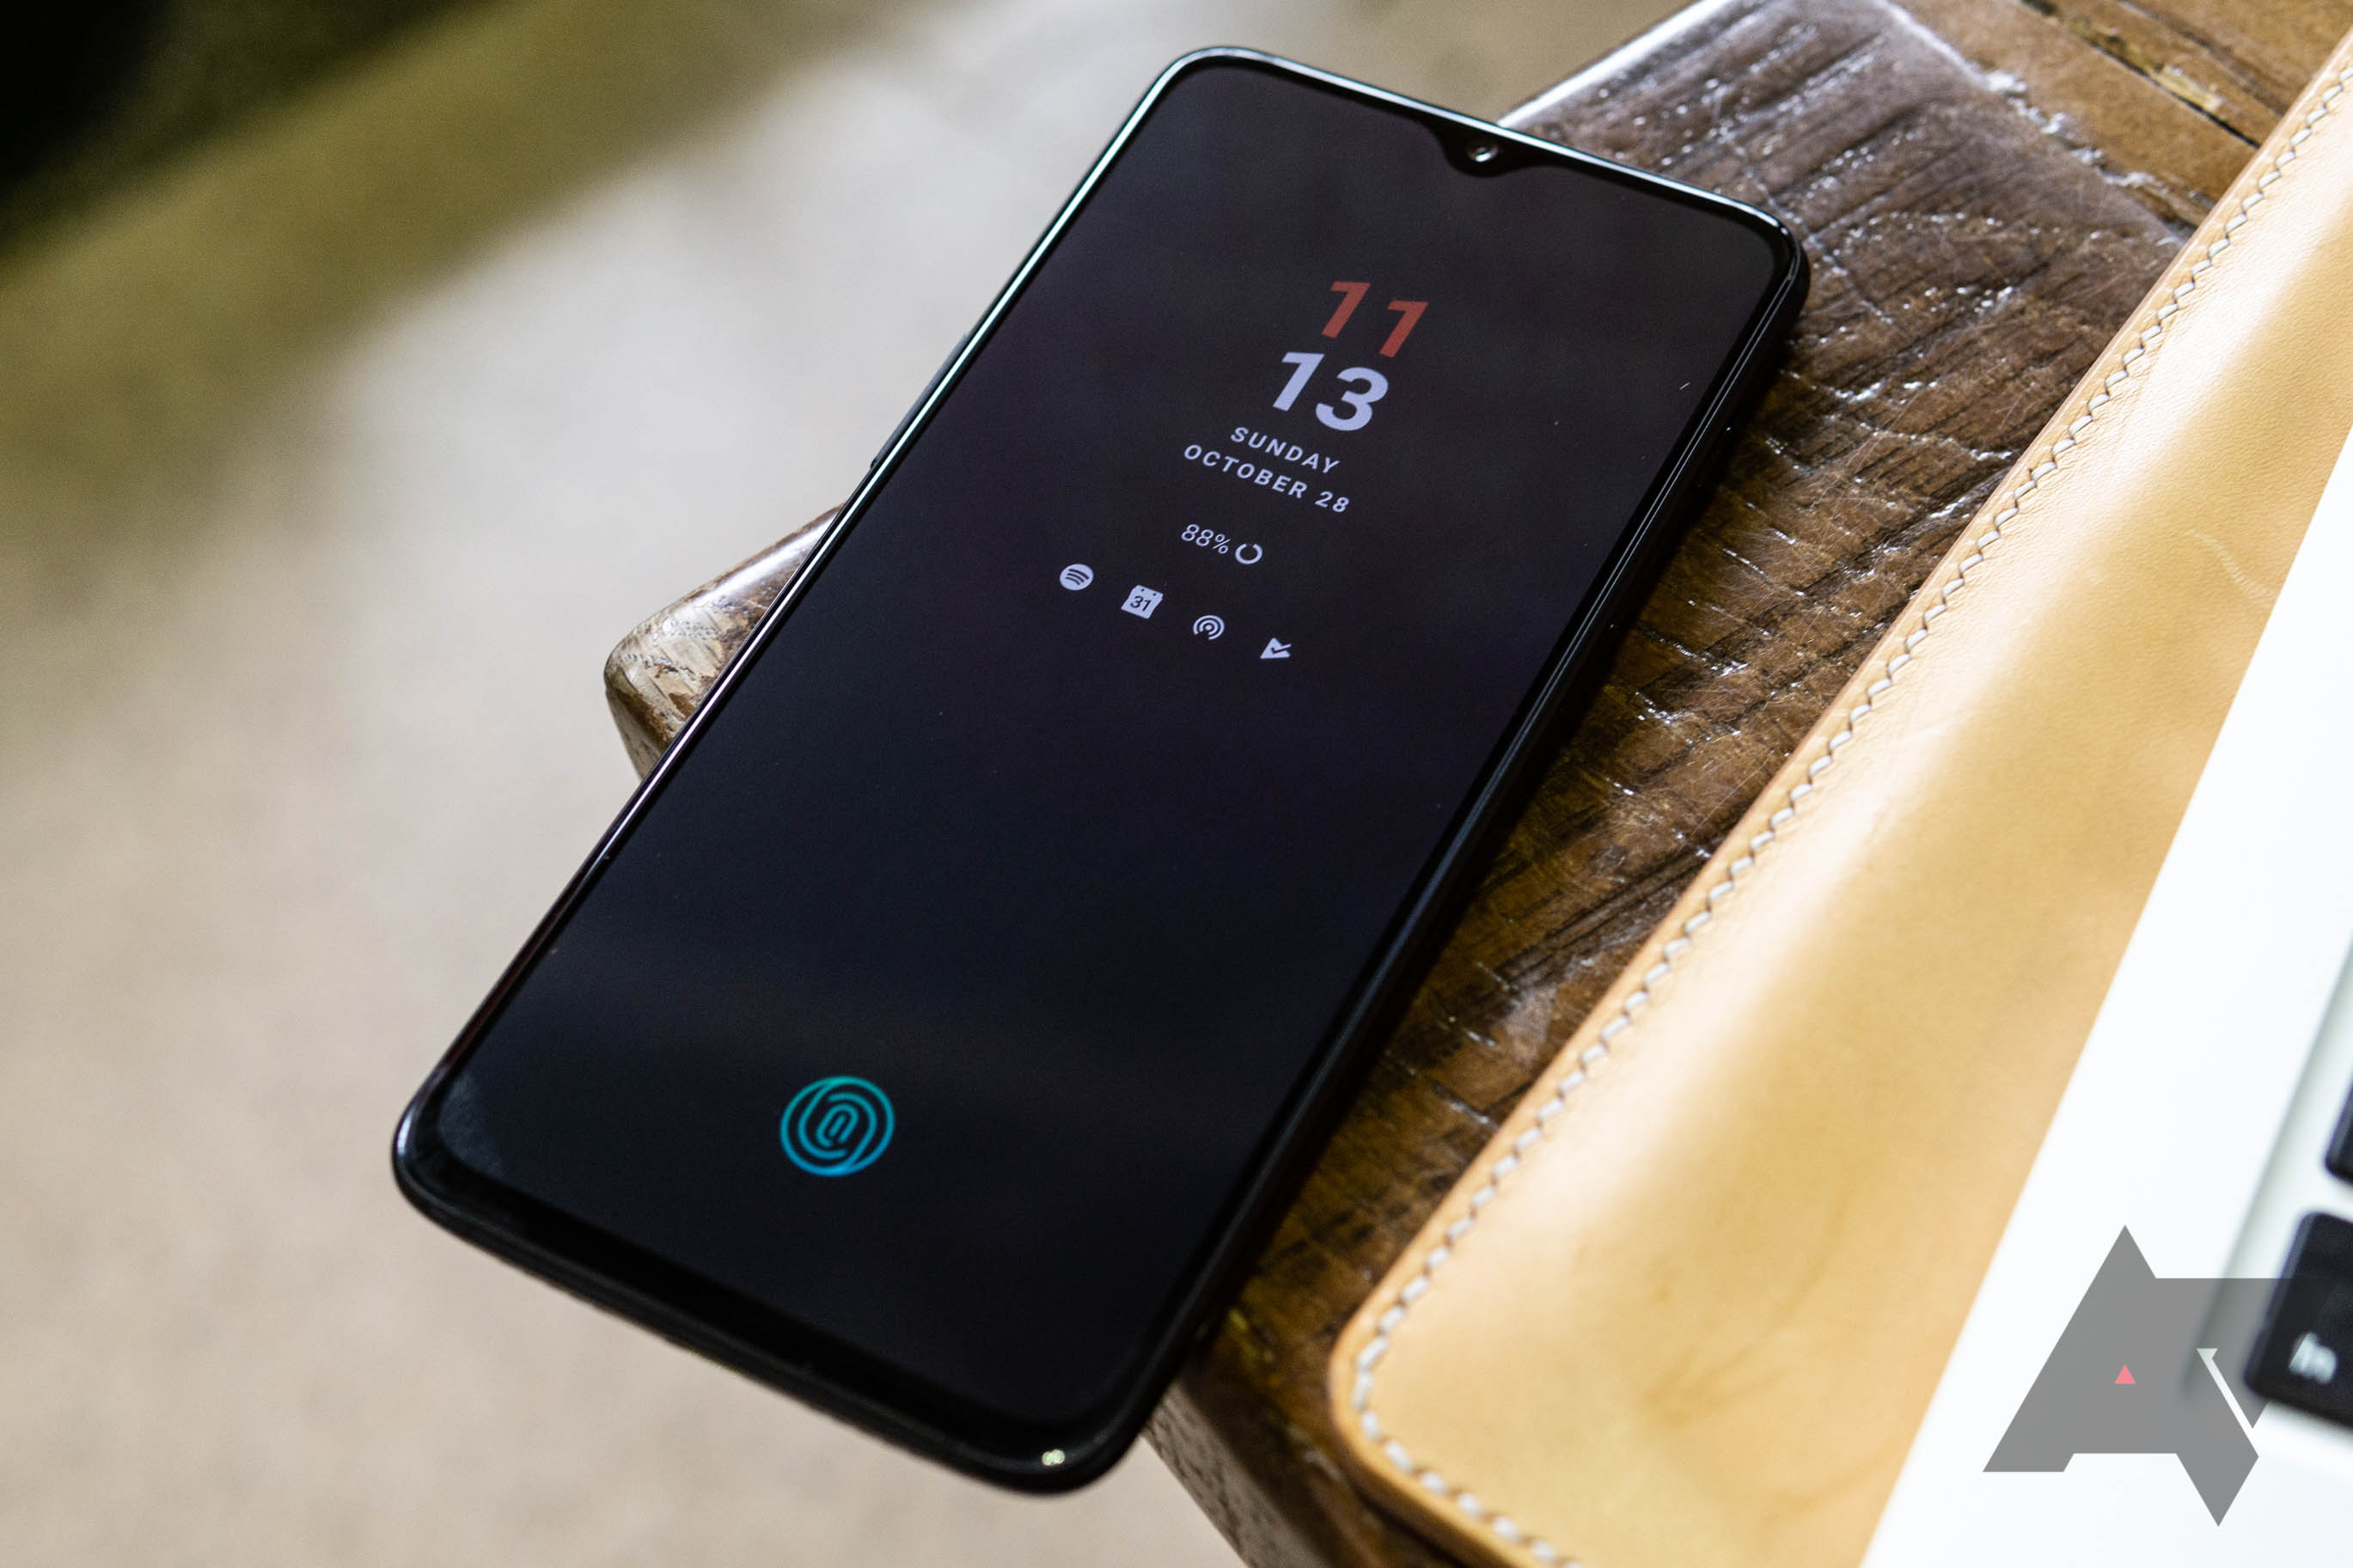 The T-Mobile OnePlus 6T's second update adds an Assistant power button shortcut and not much else